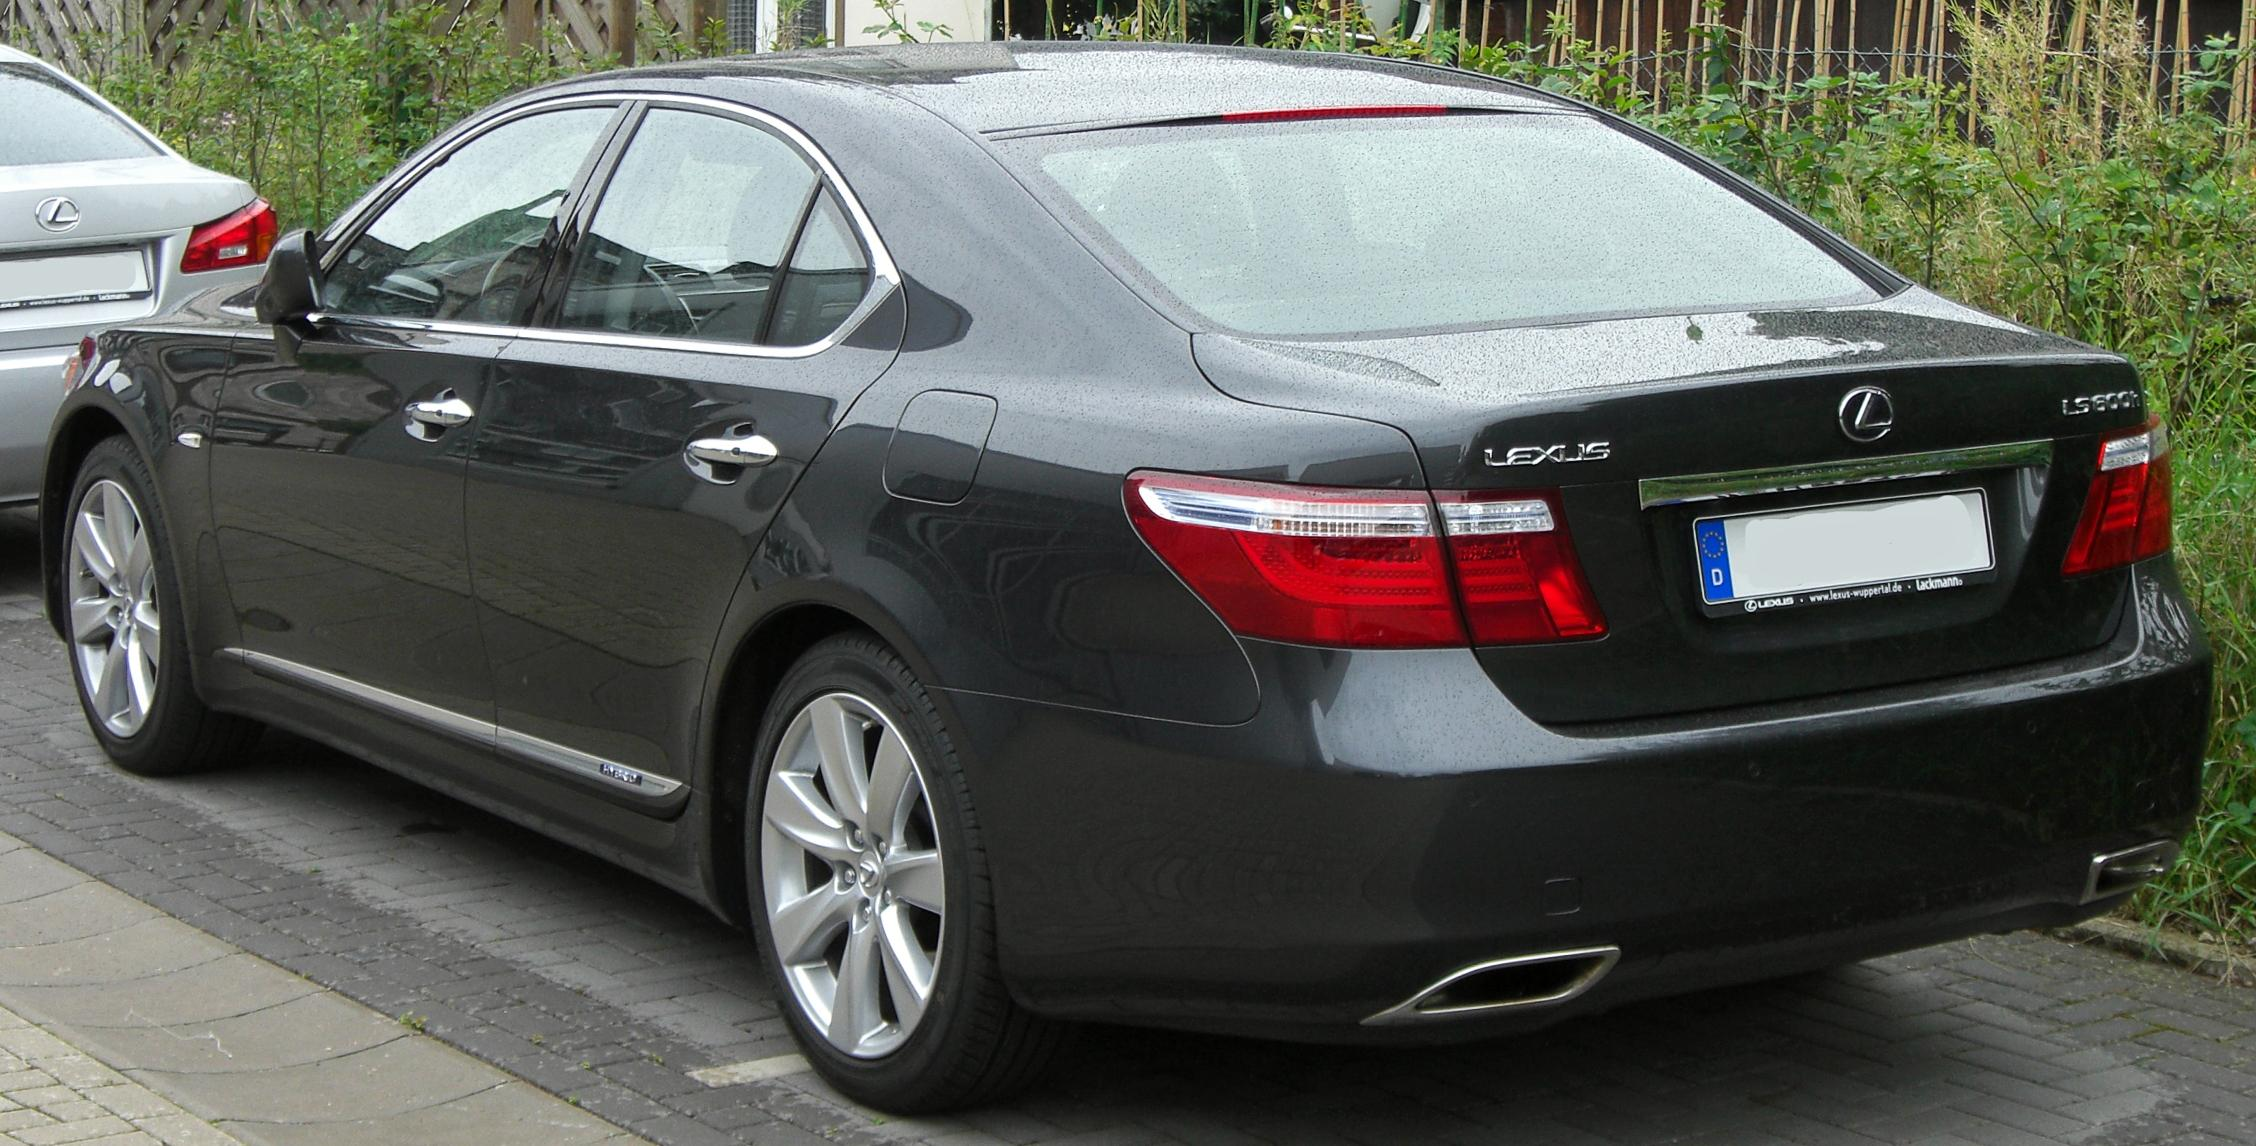 File:Lexus LS 600h rear.JPG - Wikimedia Commons